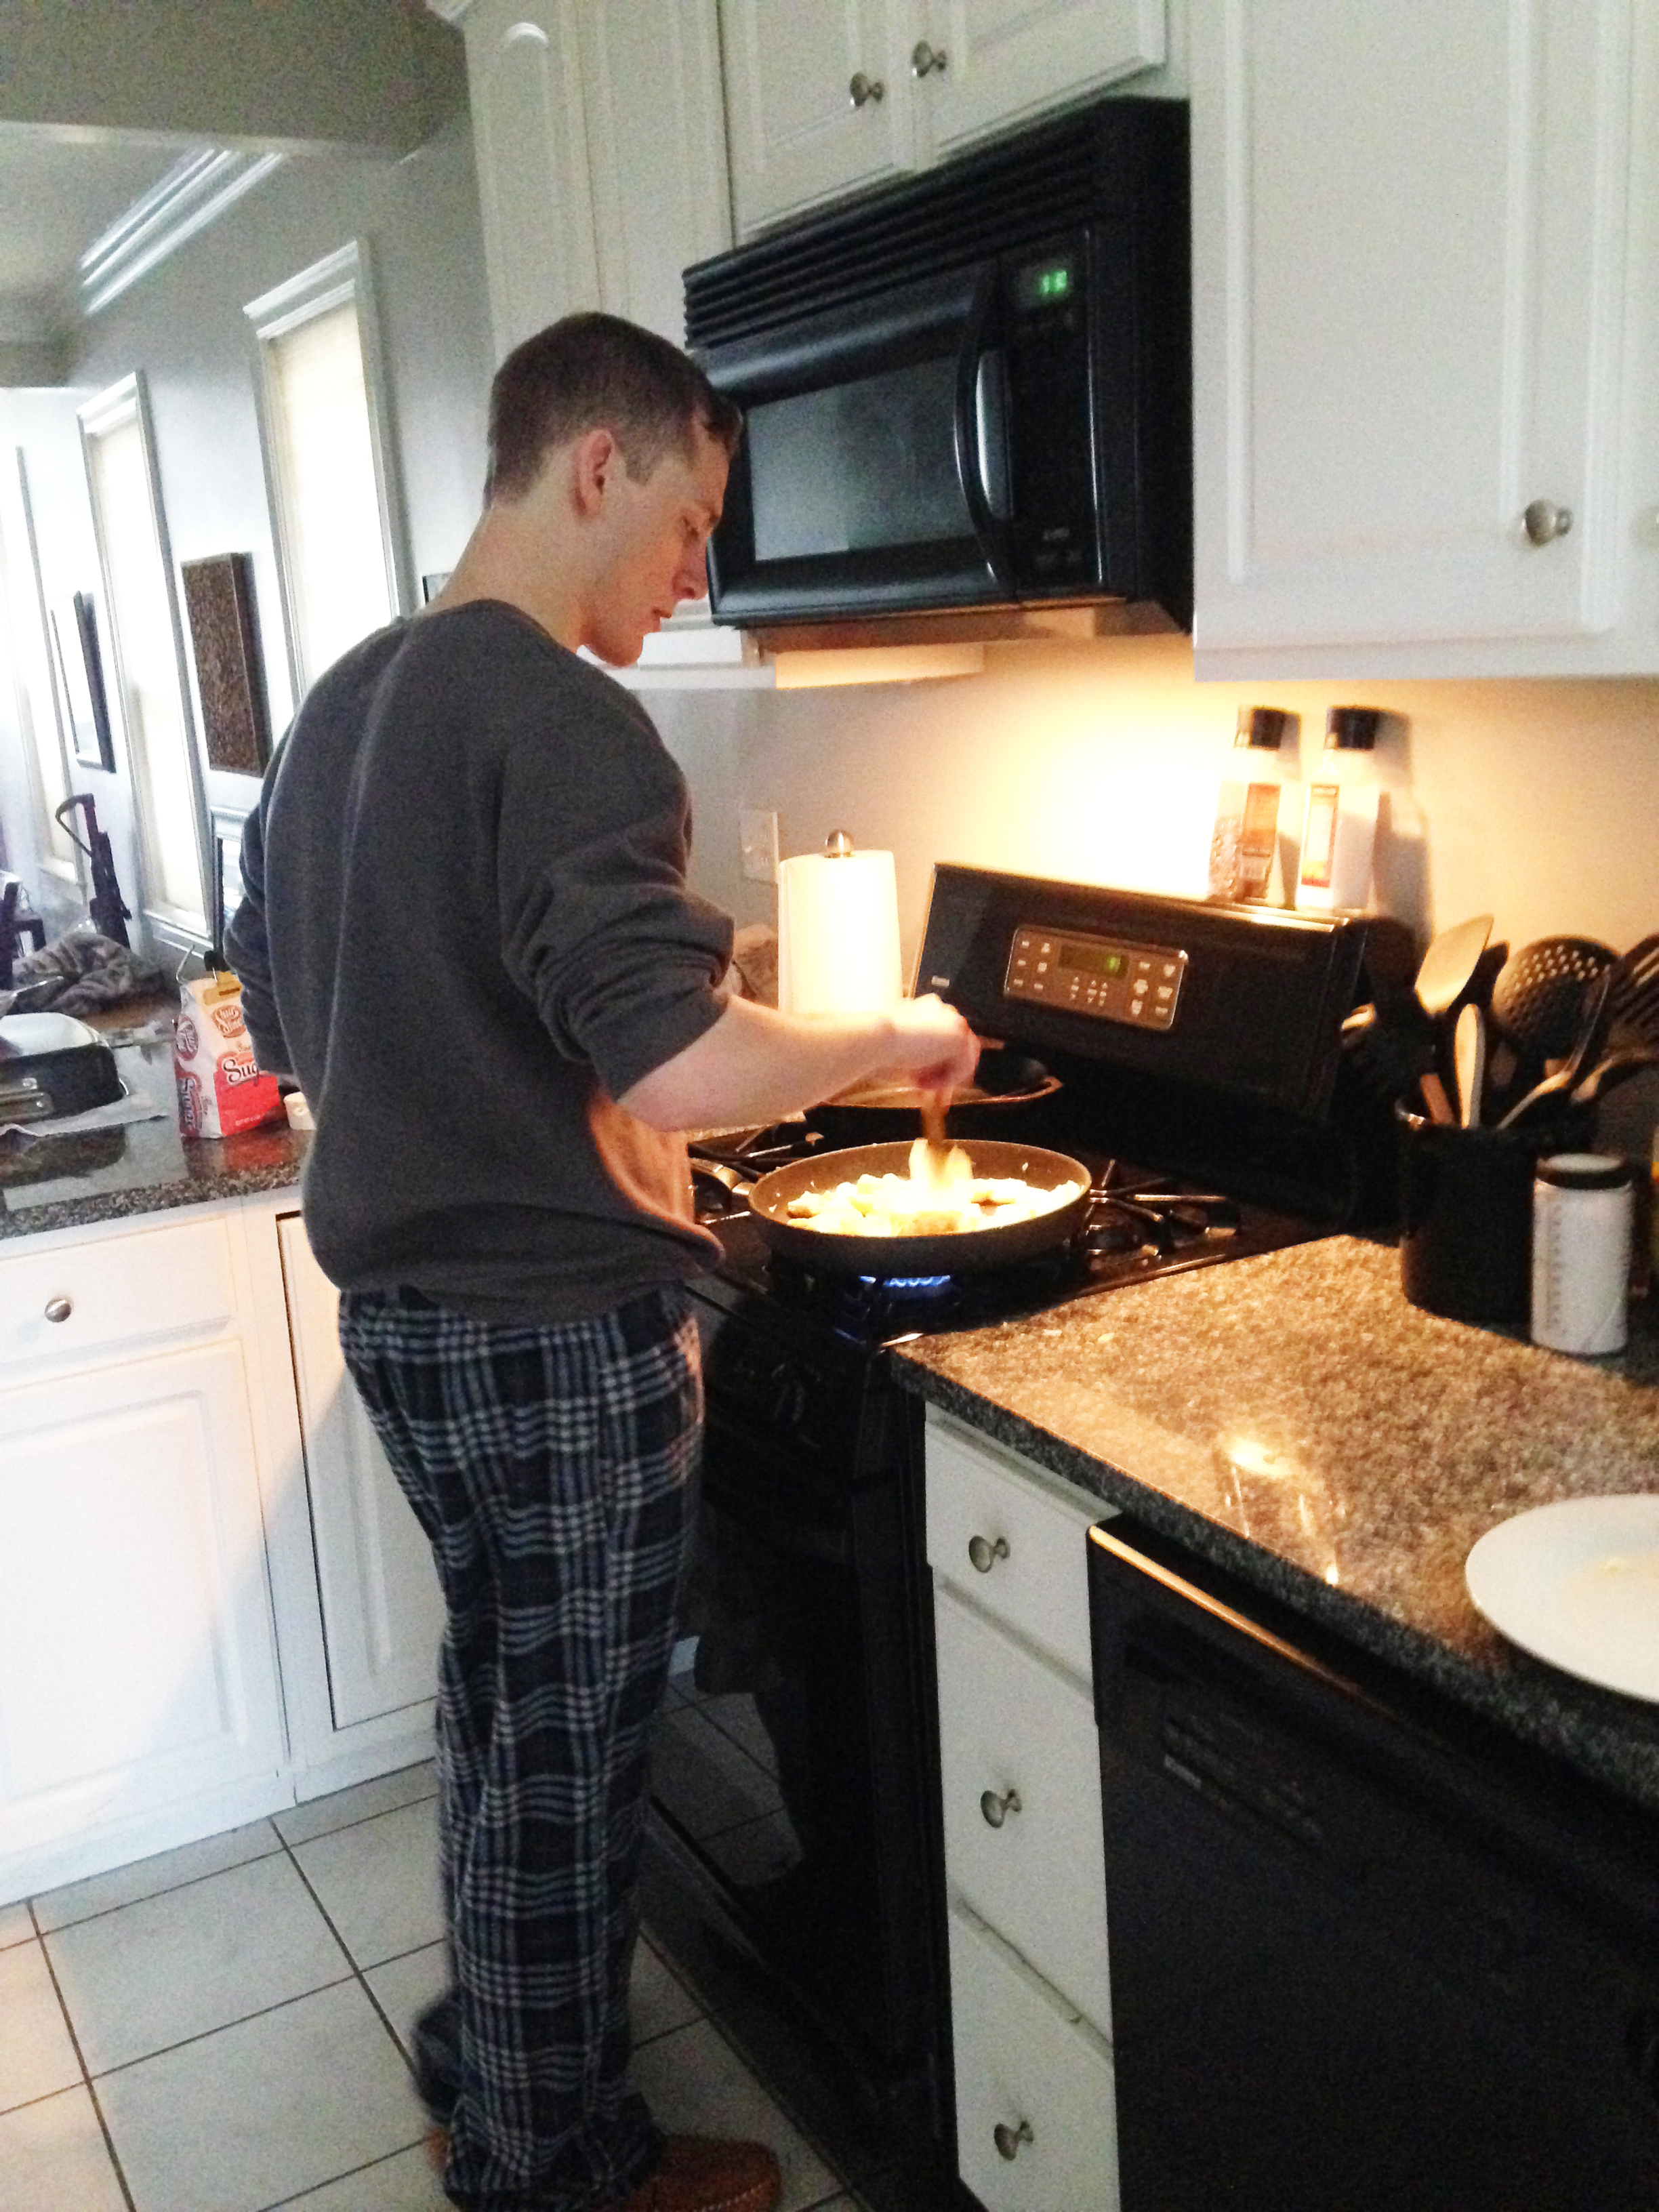 jake making breakfast